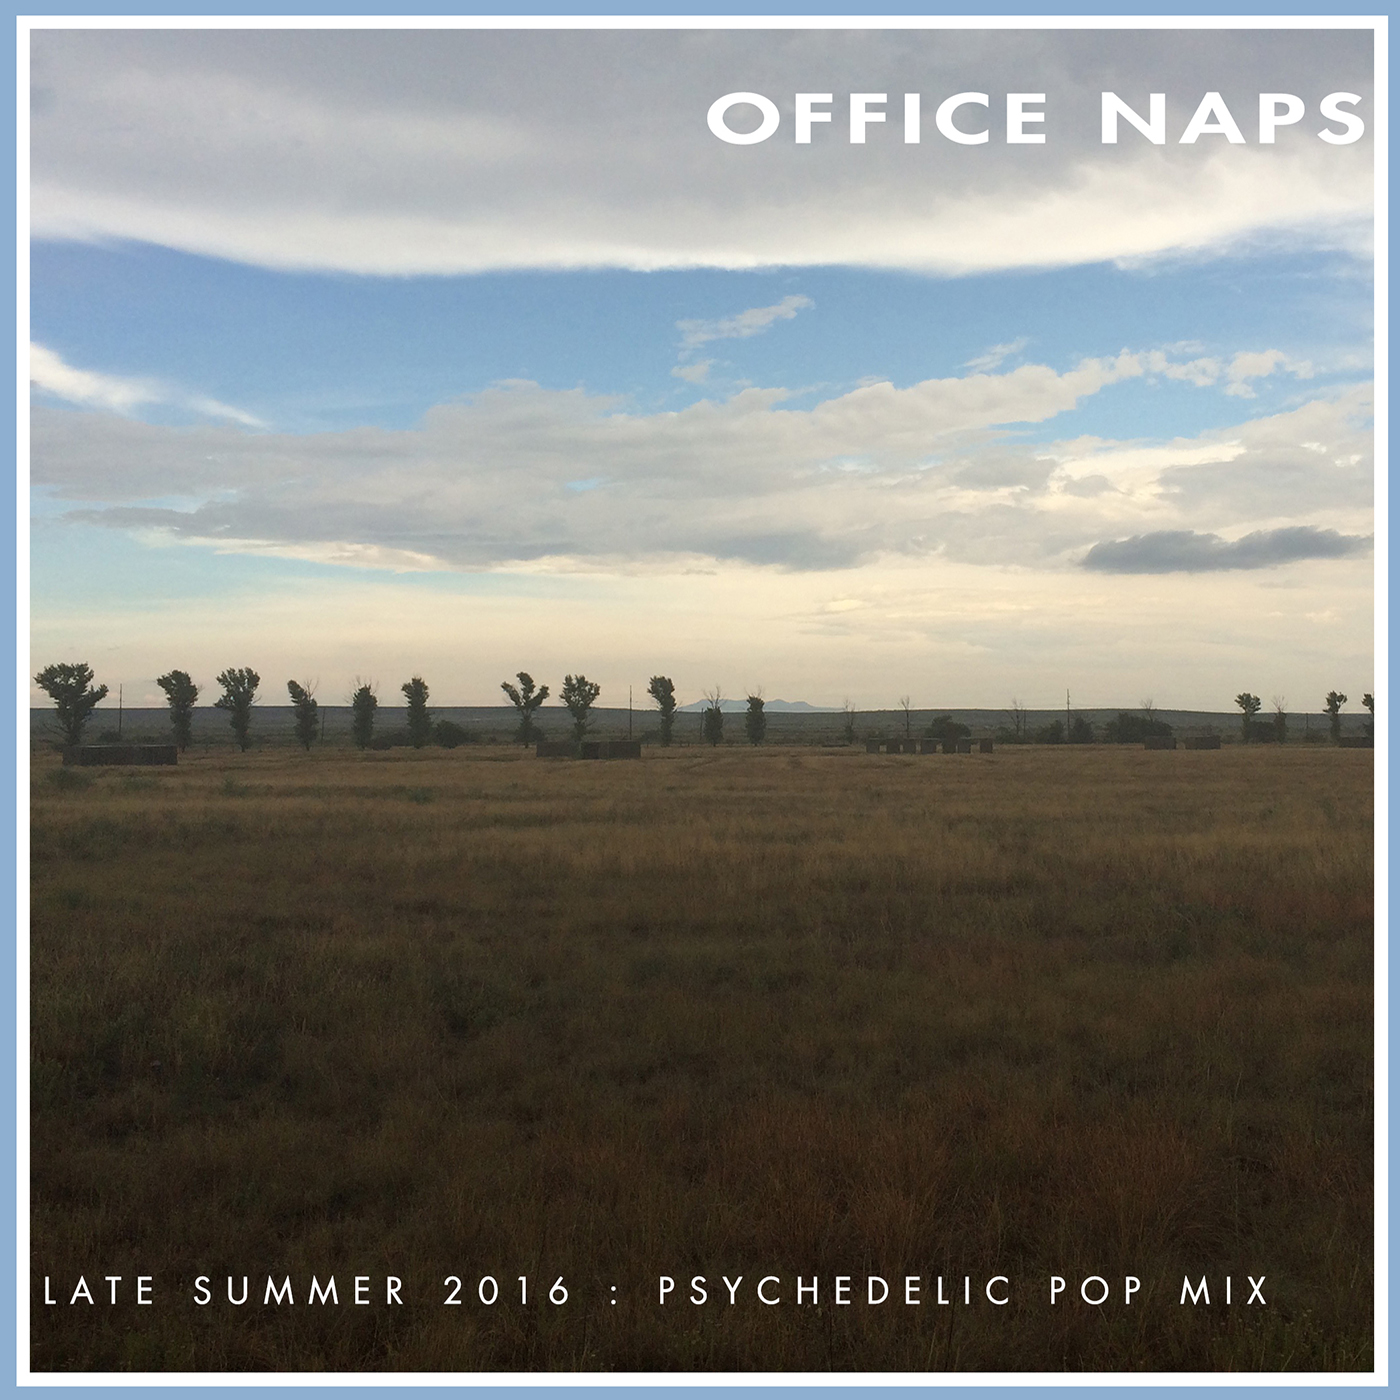 office naps. Office Naps Late Summer 2016 Psychedelic Pop Mix